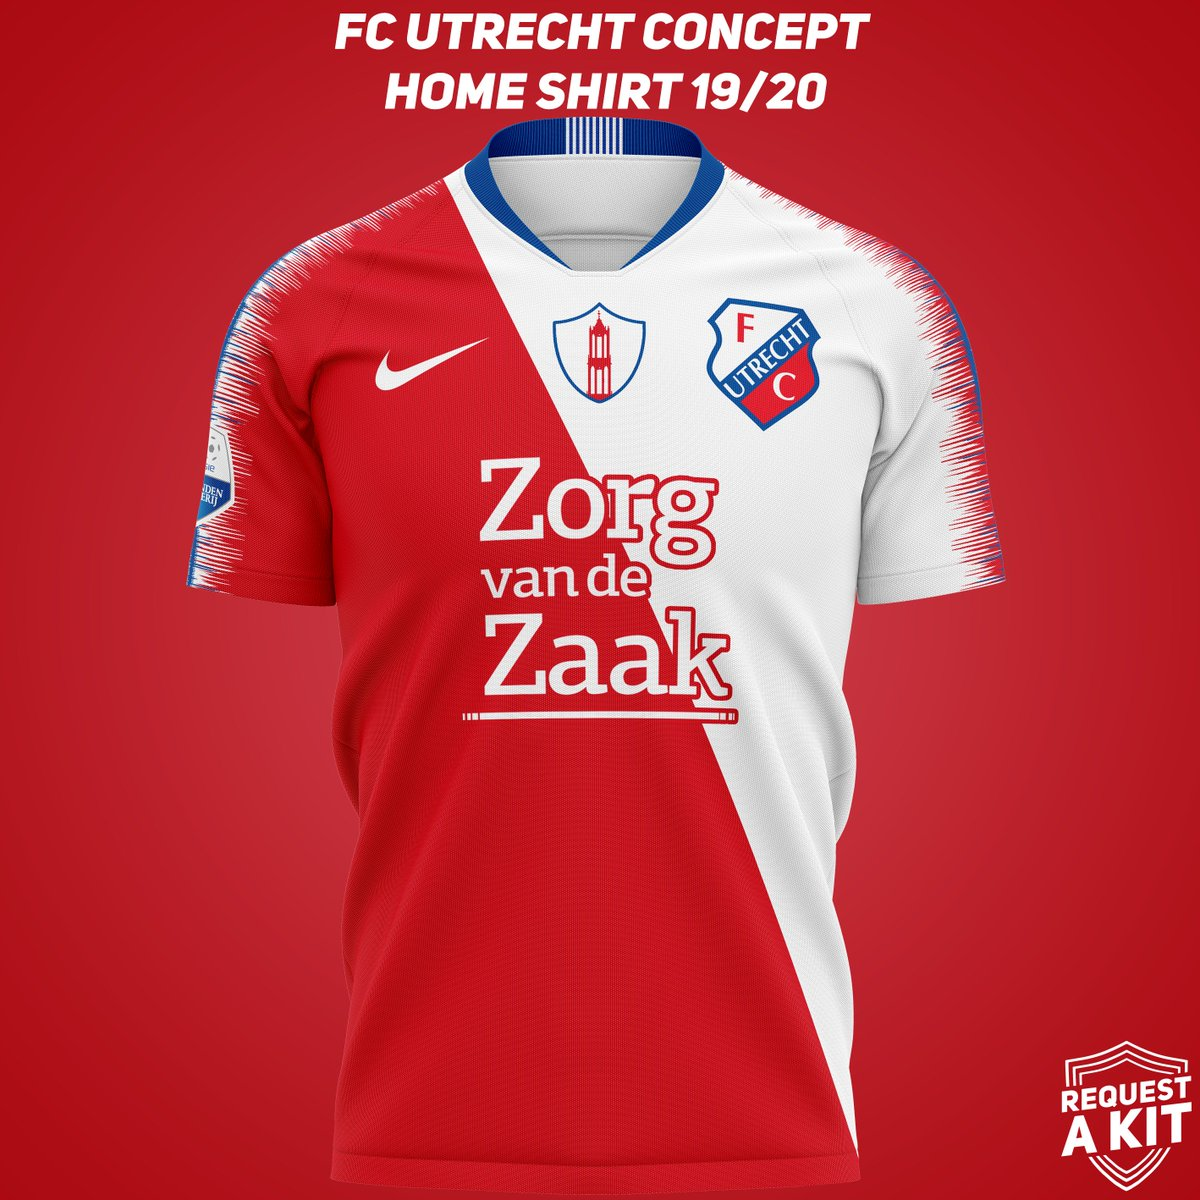 Request A Kit On Twitter Fc Utrecht Concept Home Away And Third Shirts 2019 20 Requested By Specstc Utrecht Fcutrecht Fcu Utrproat Utregtillidie Fm19 Wearethecommunity Download For Your Football Manager Save Here Https T Co Wdd786yfrv